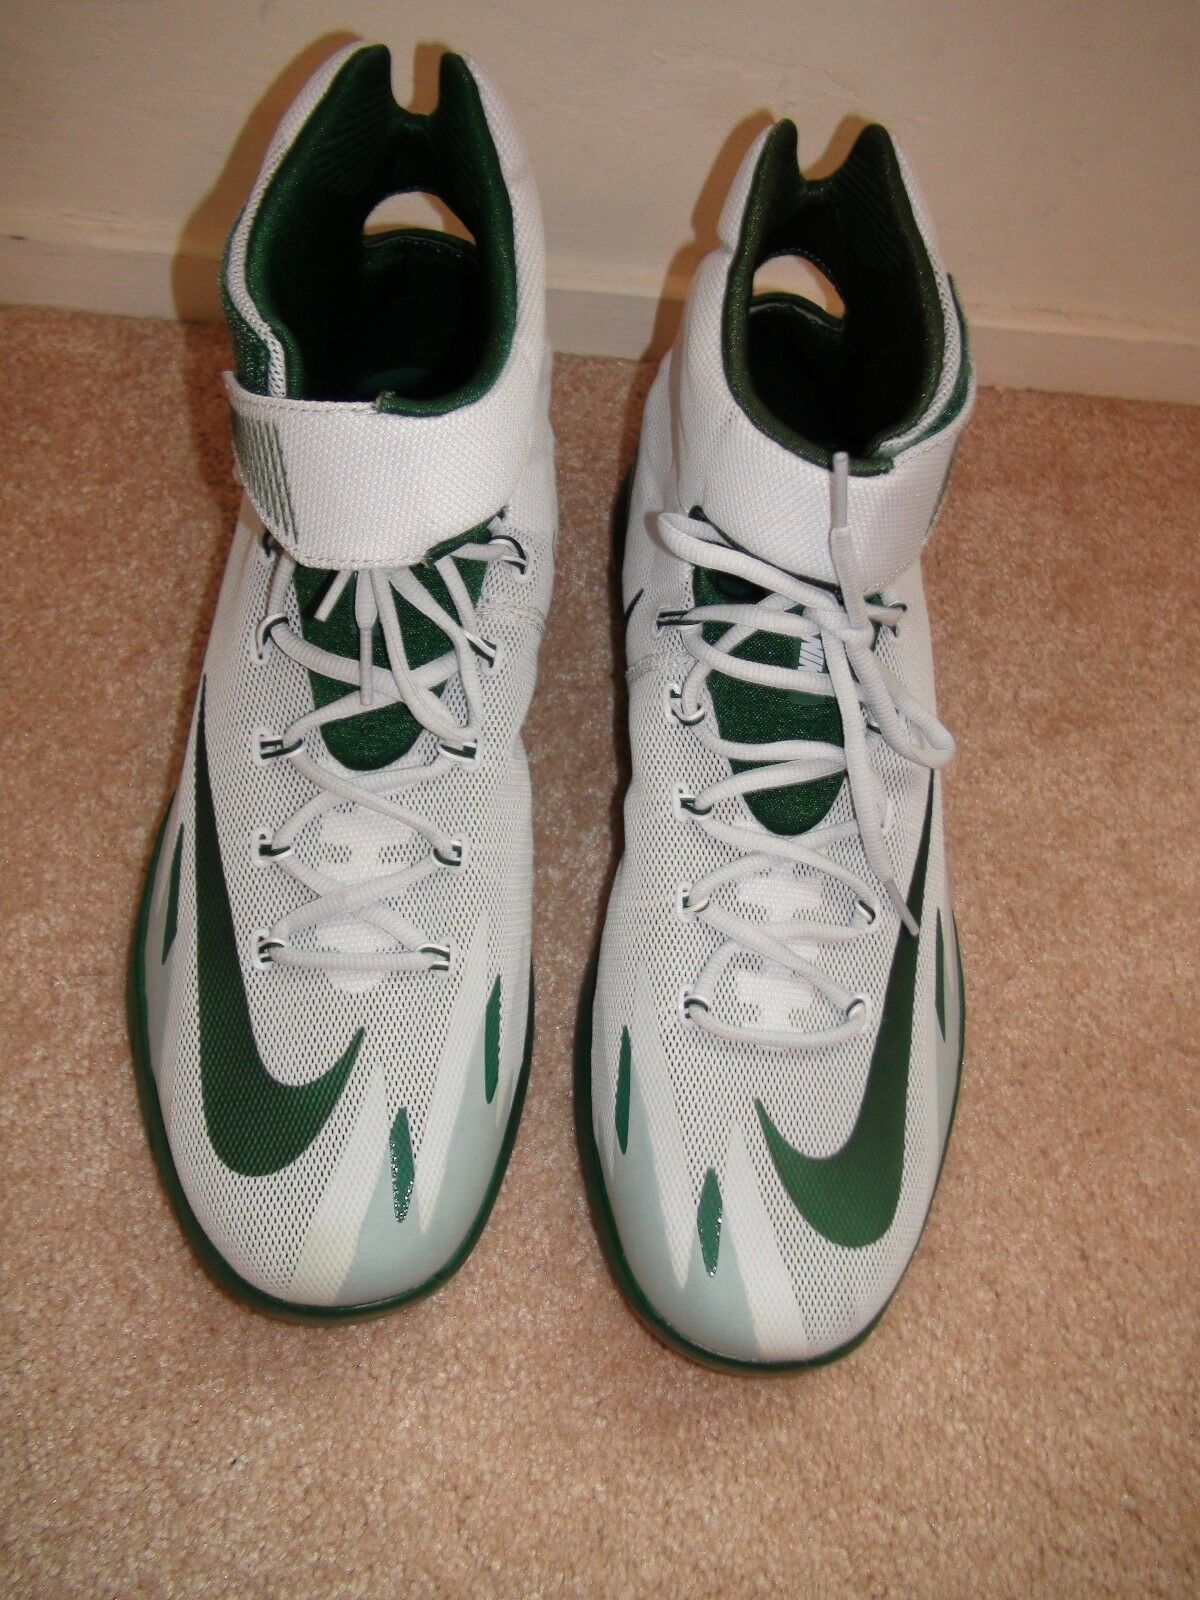 Nike Zoom HyperRev Kyrie Erving 643301-003 Promo Sample Michigan State 13.5 NEW